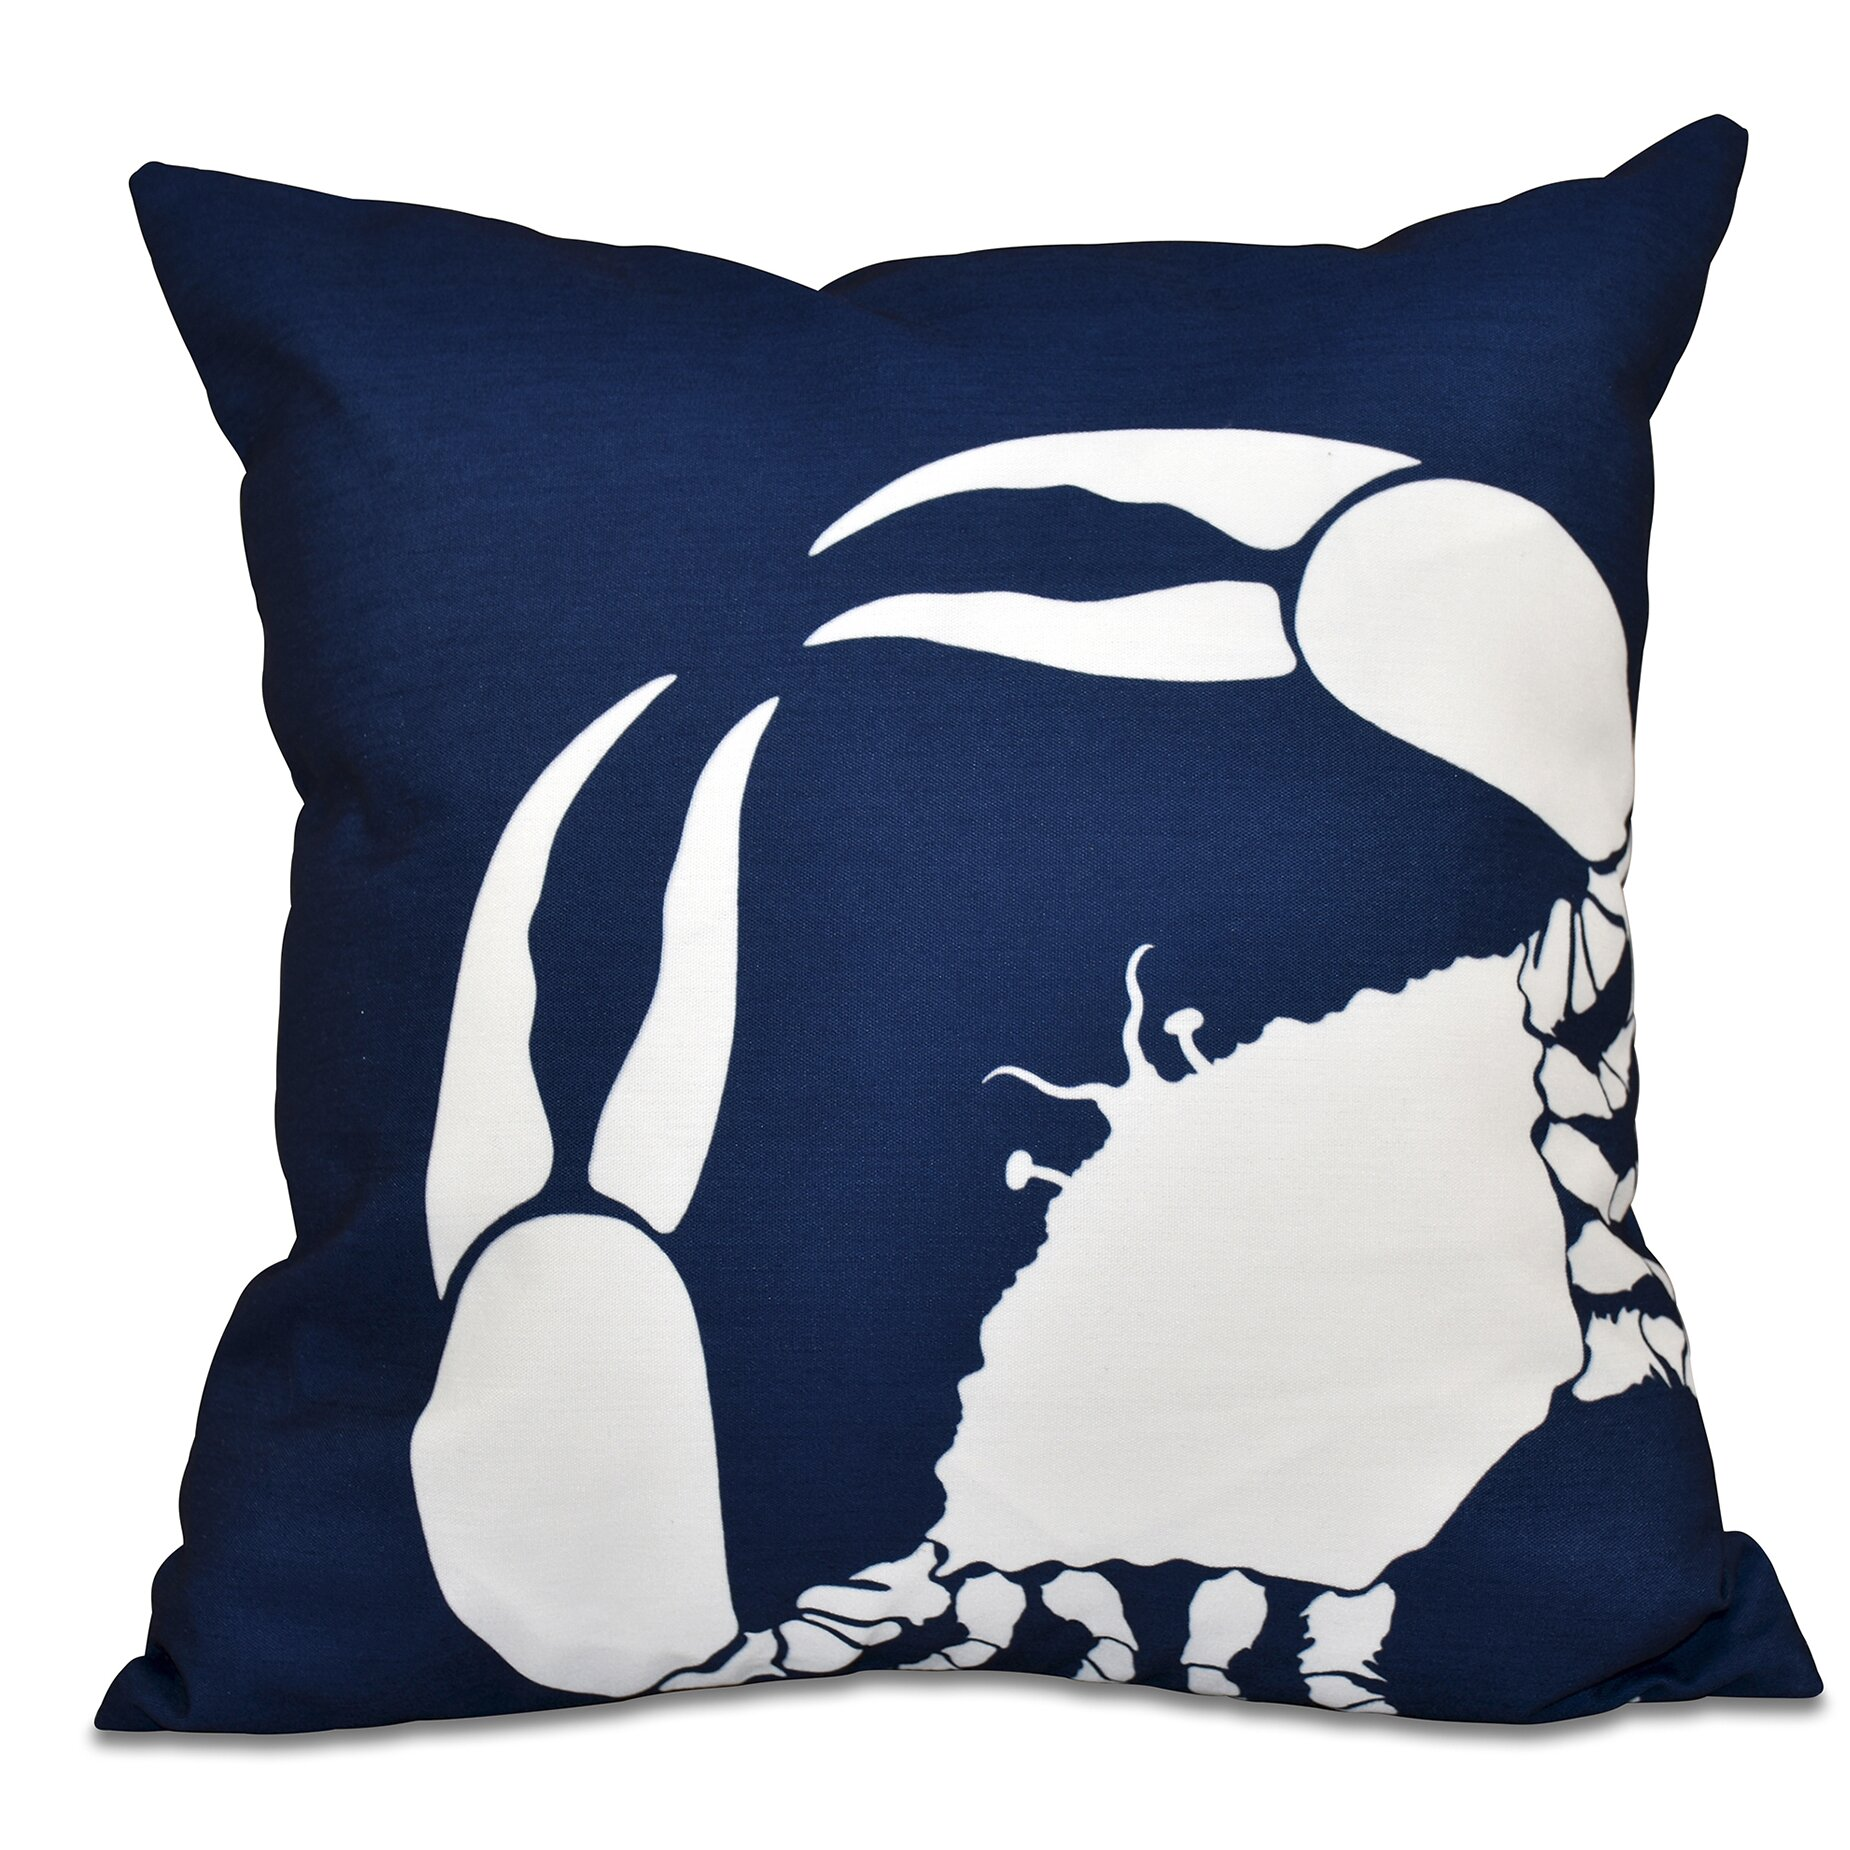 Decorative Pillows Marshalls : Marshallton Crab Outdoor Throw Pillow Wayfair